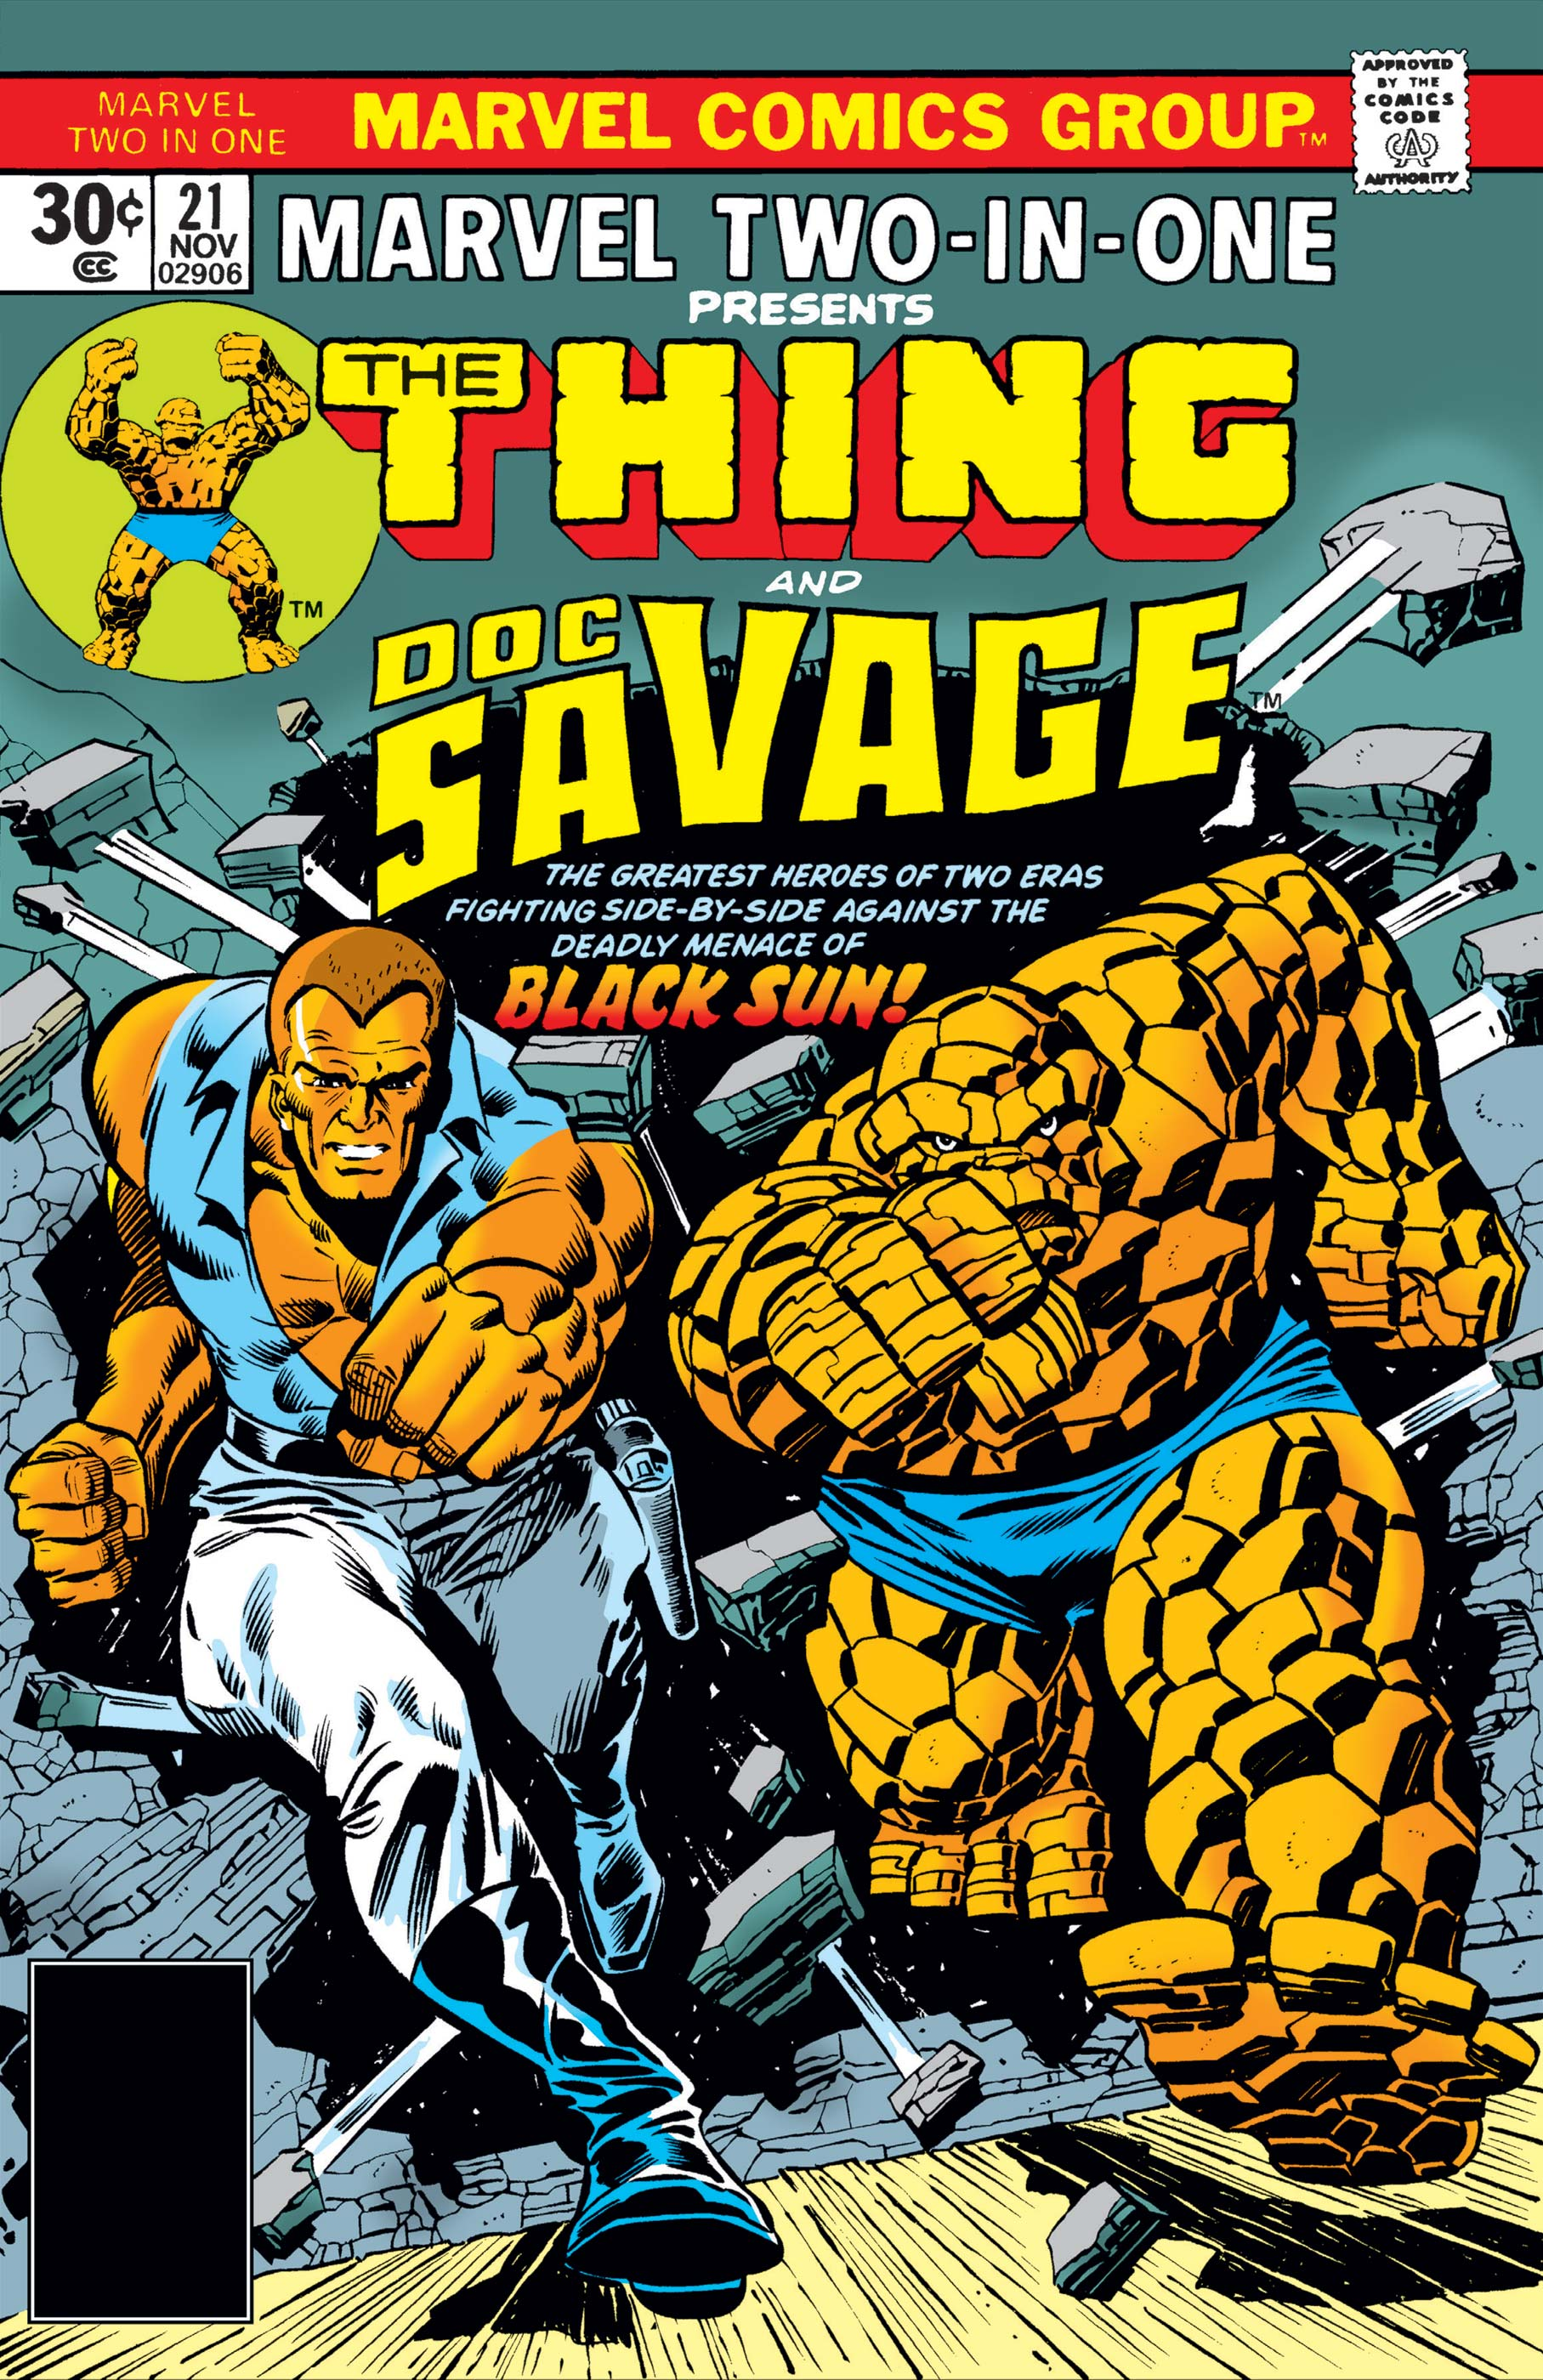 Marvel Two-in-One (1974) #21